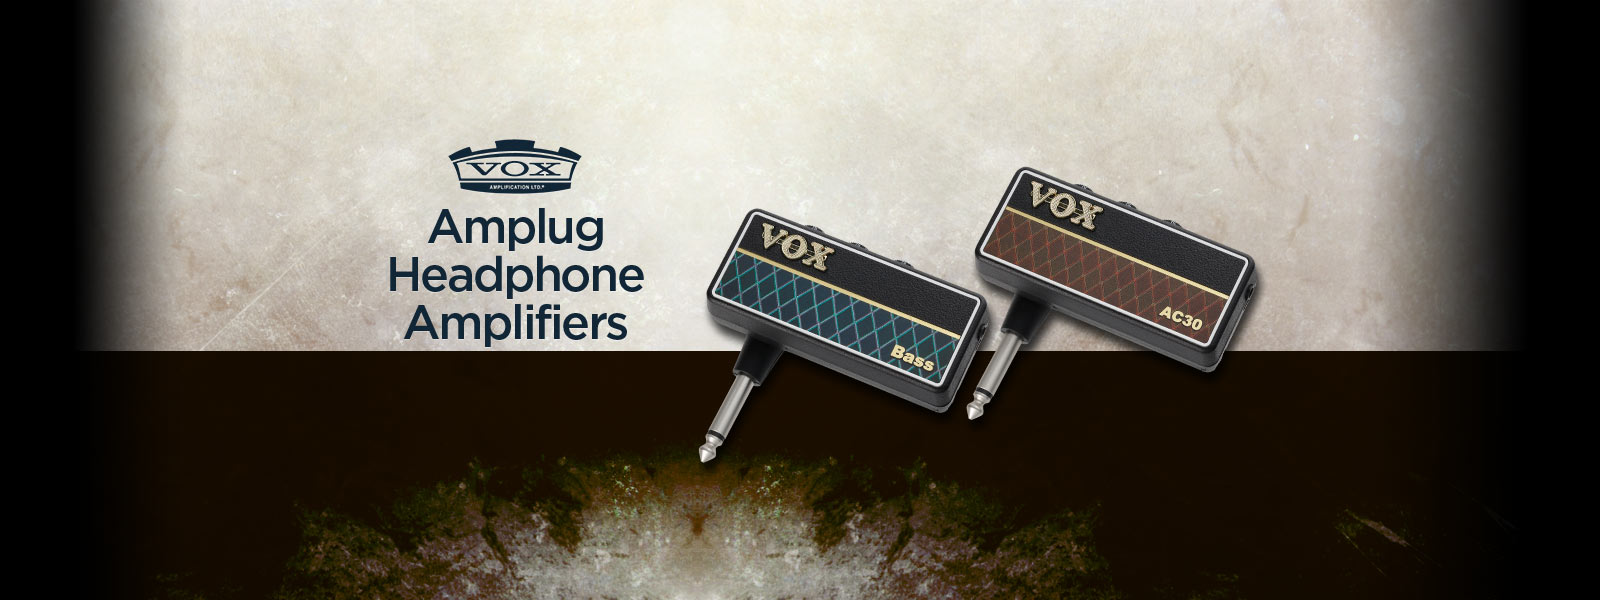 VOX Amplug Headphone Series Amplifiers